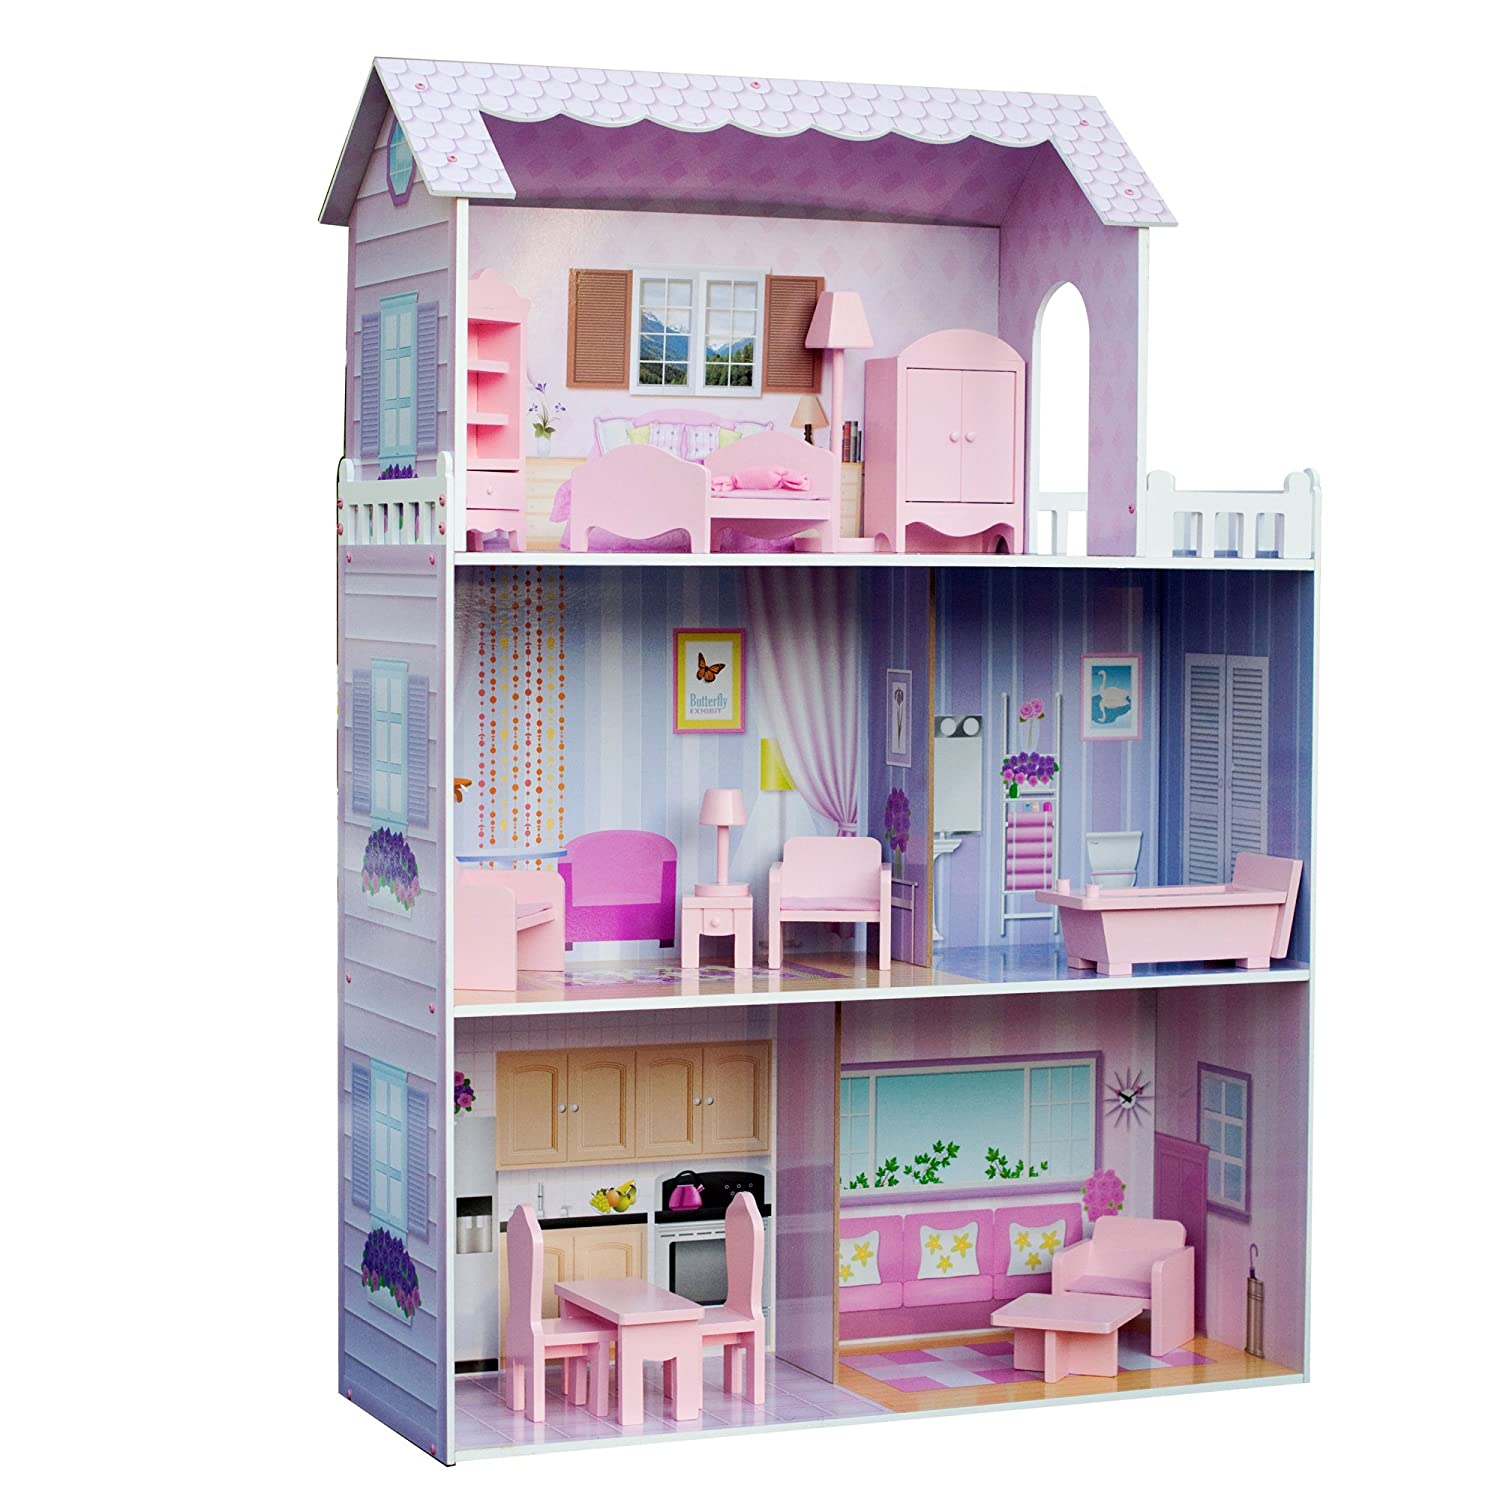 wooden barbie doll house furniture. Teamson Kids - Fancy Mansion Wooden Doll House With 13 Pcs Furniture For 12 Inch Dolls Barbie C